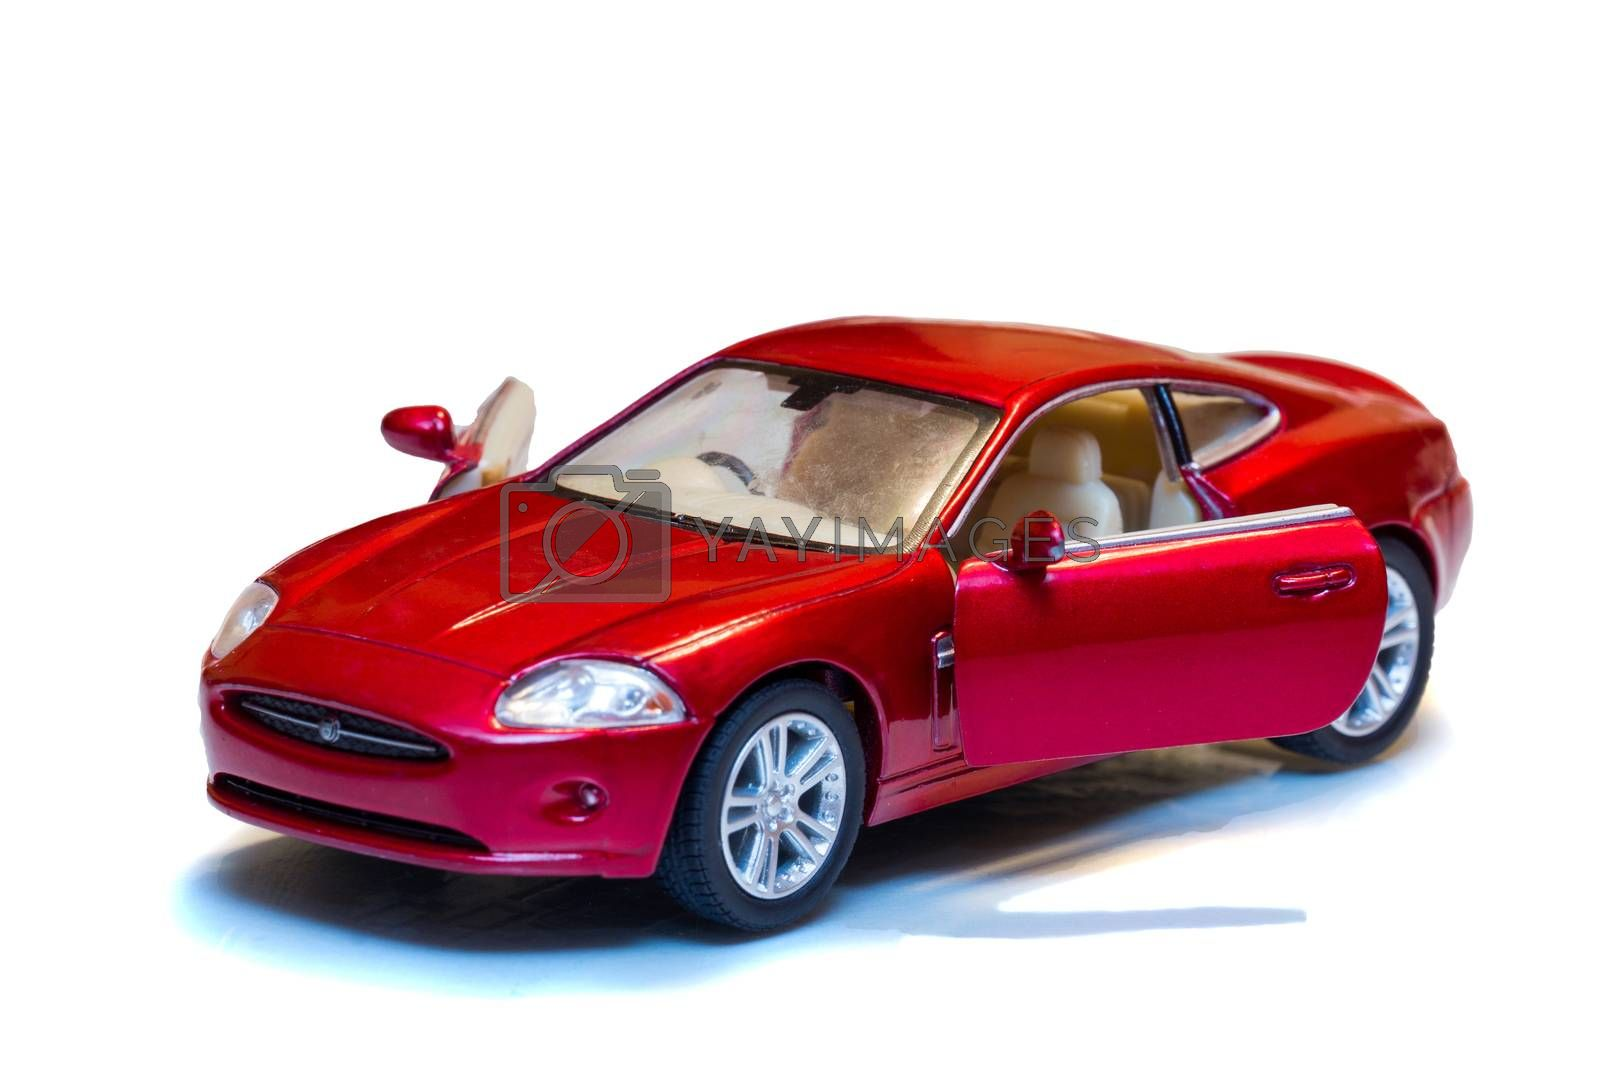 The photo shows the car on a white background